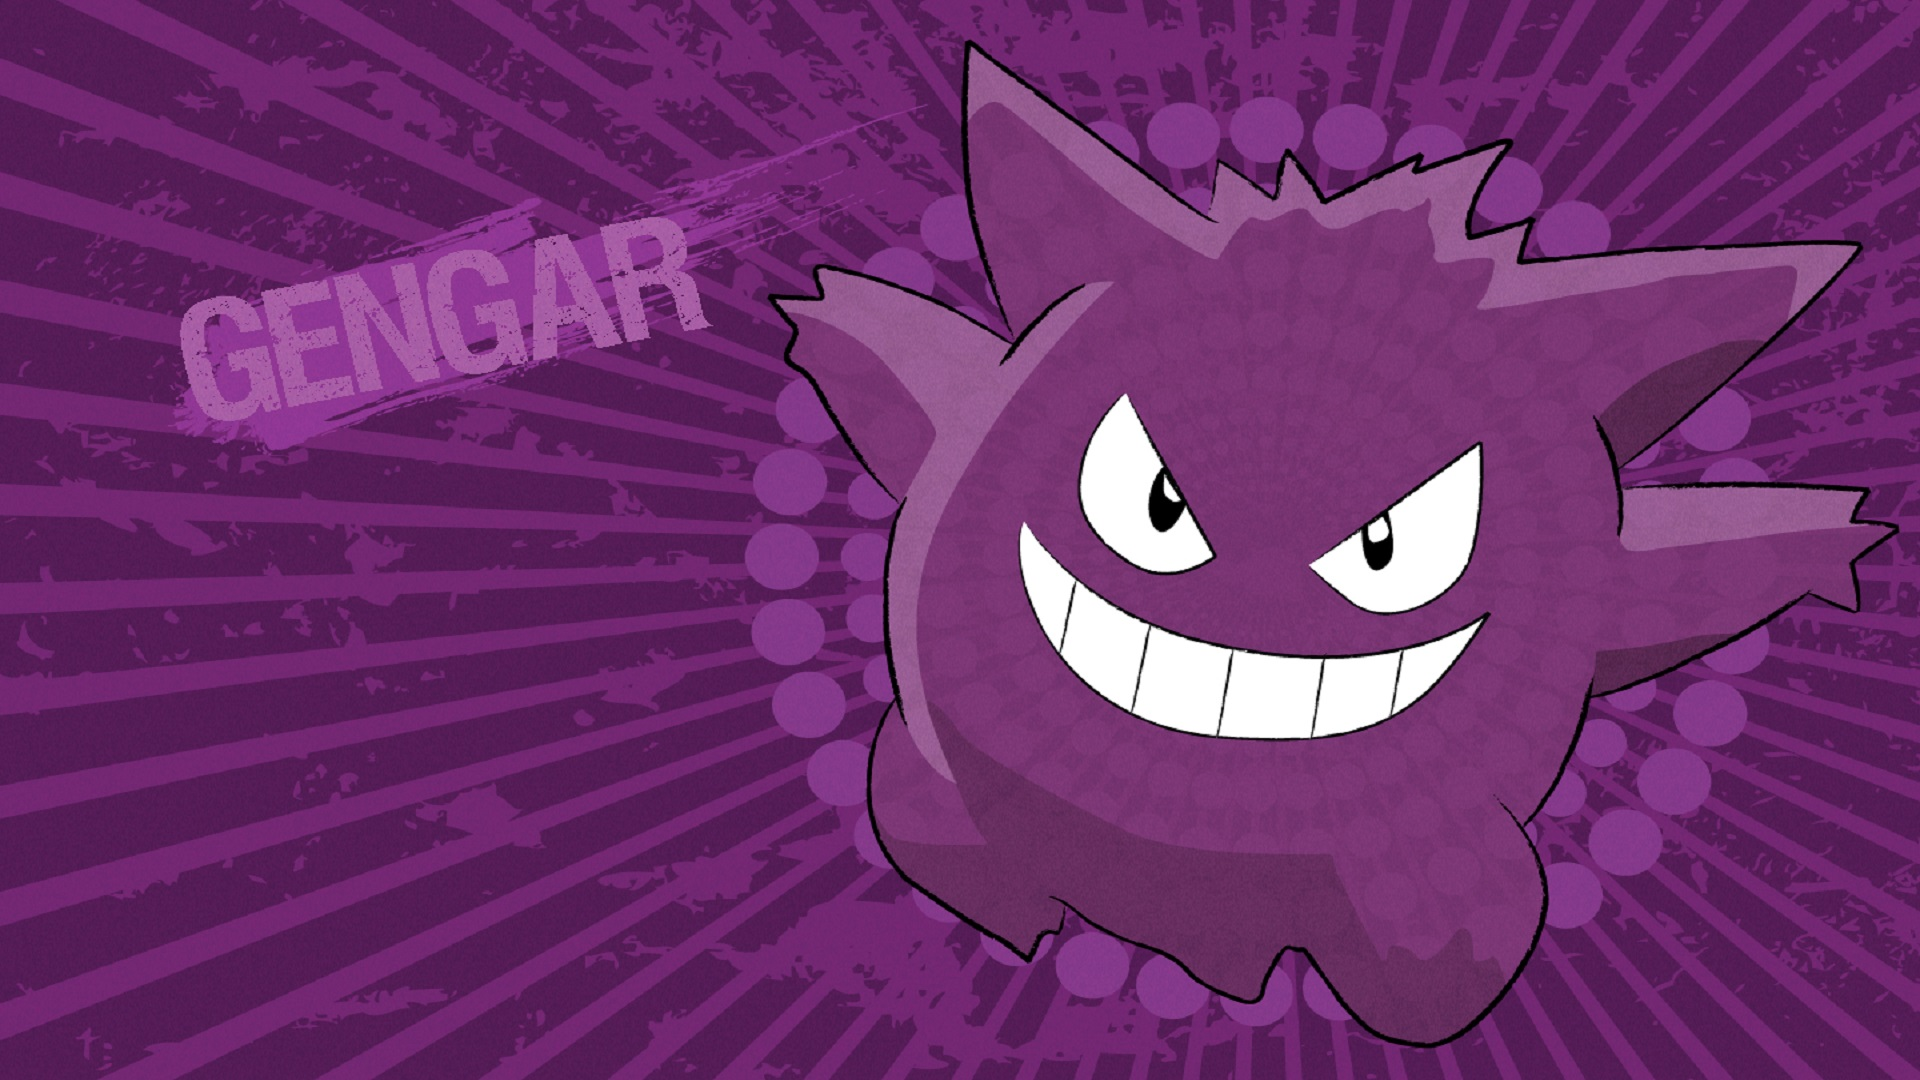 Gengar HD Wallpaper Download HD Wallpapers 1920x1080